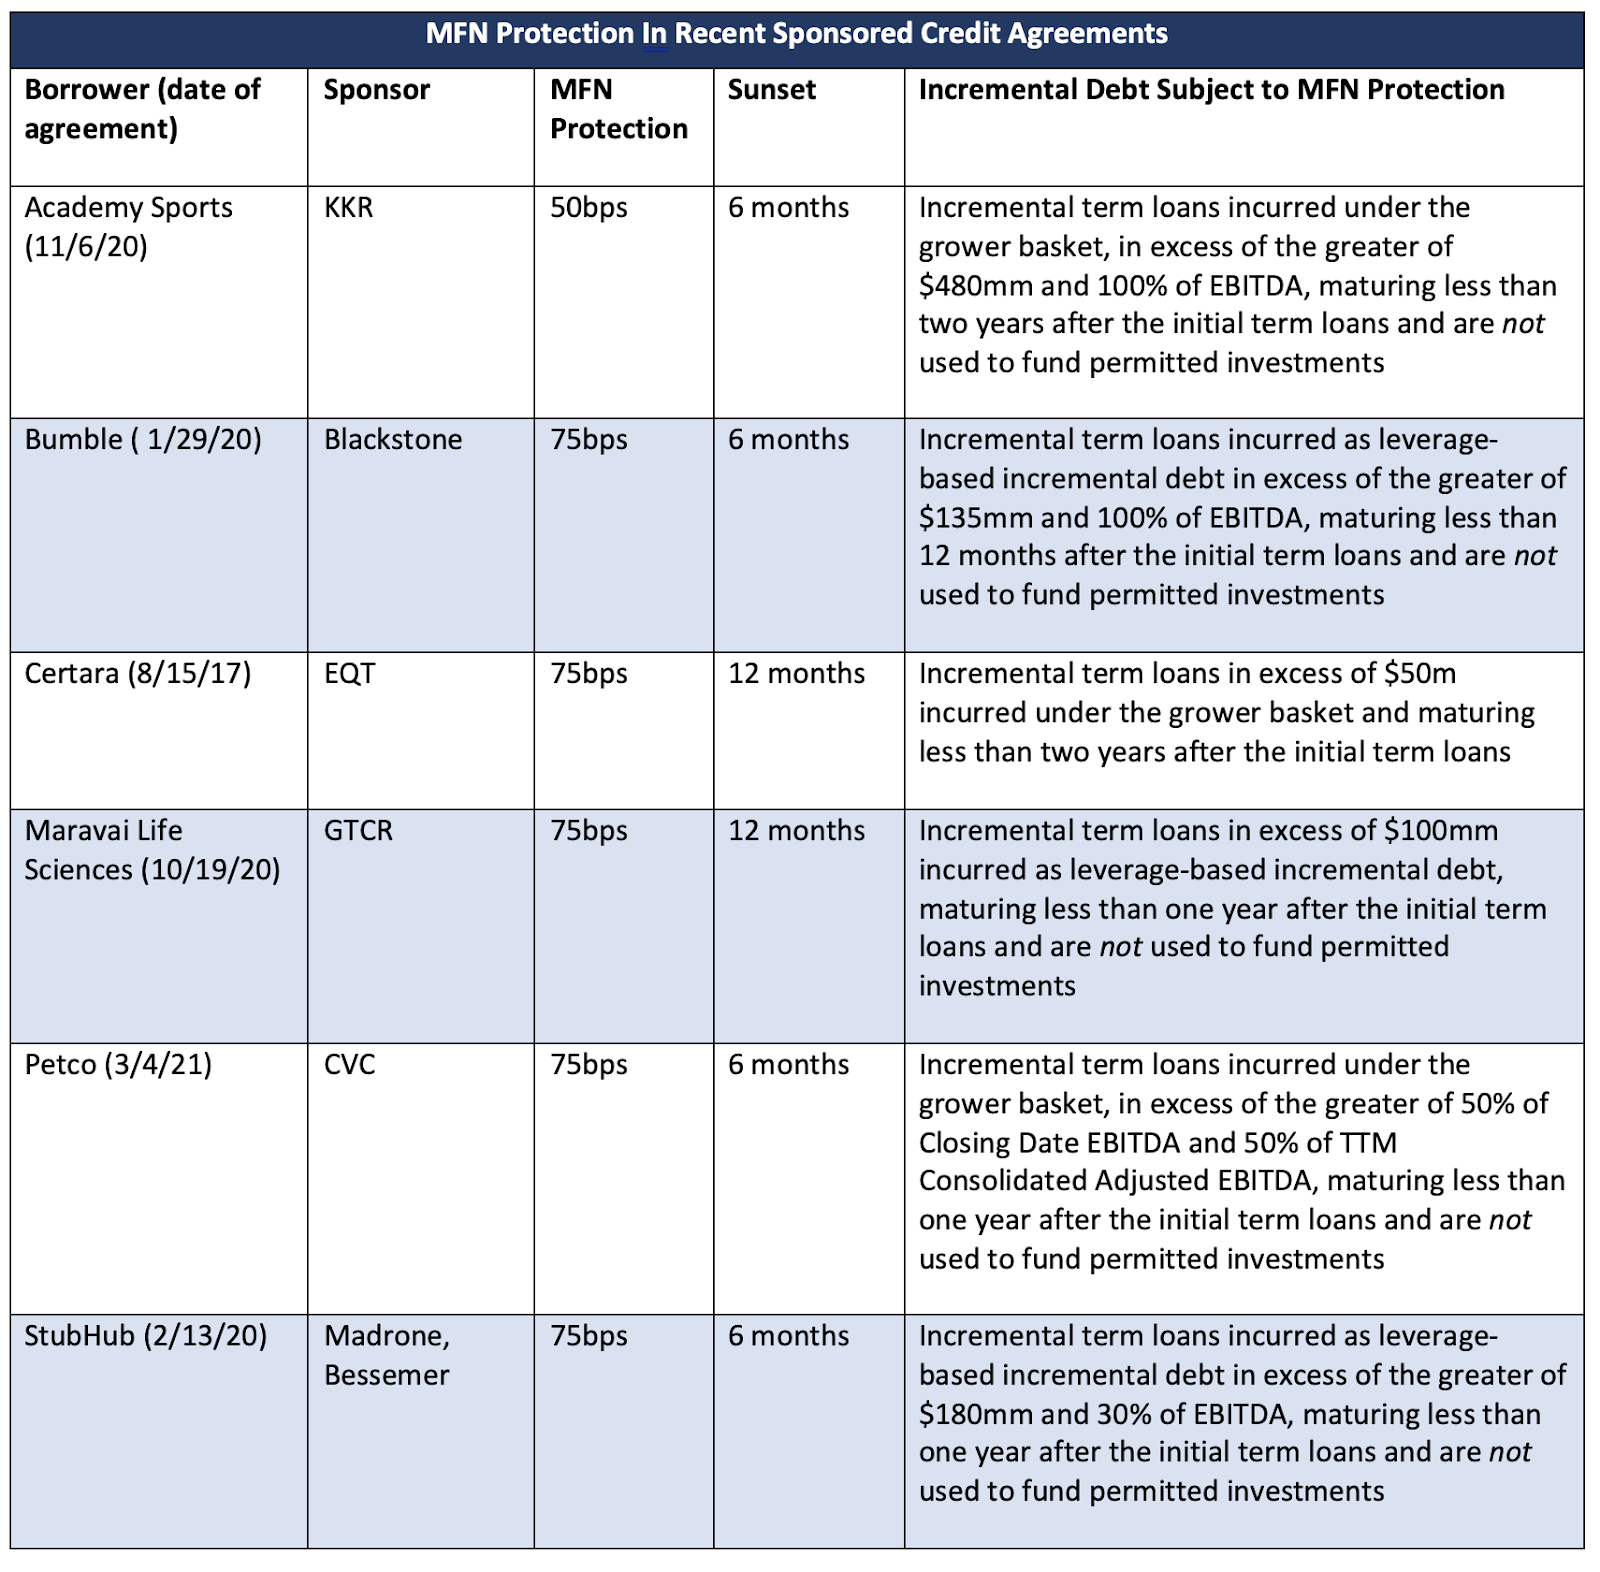 MFN protection in recent sponsored credit agreements